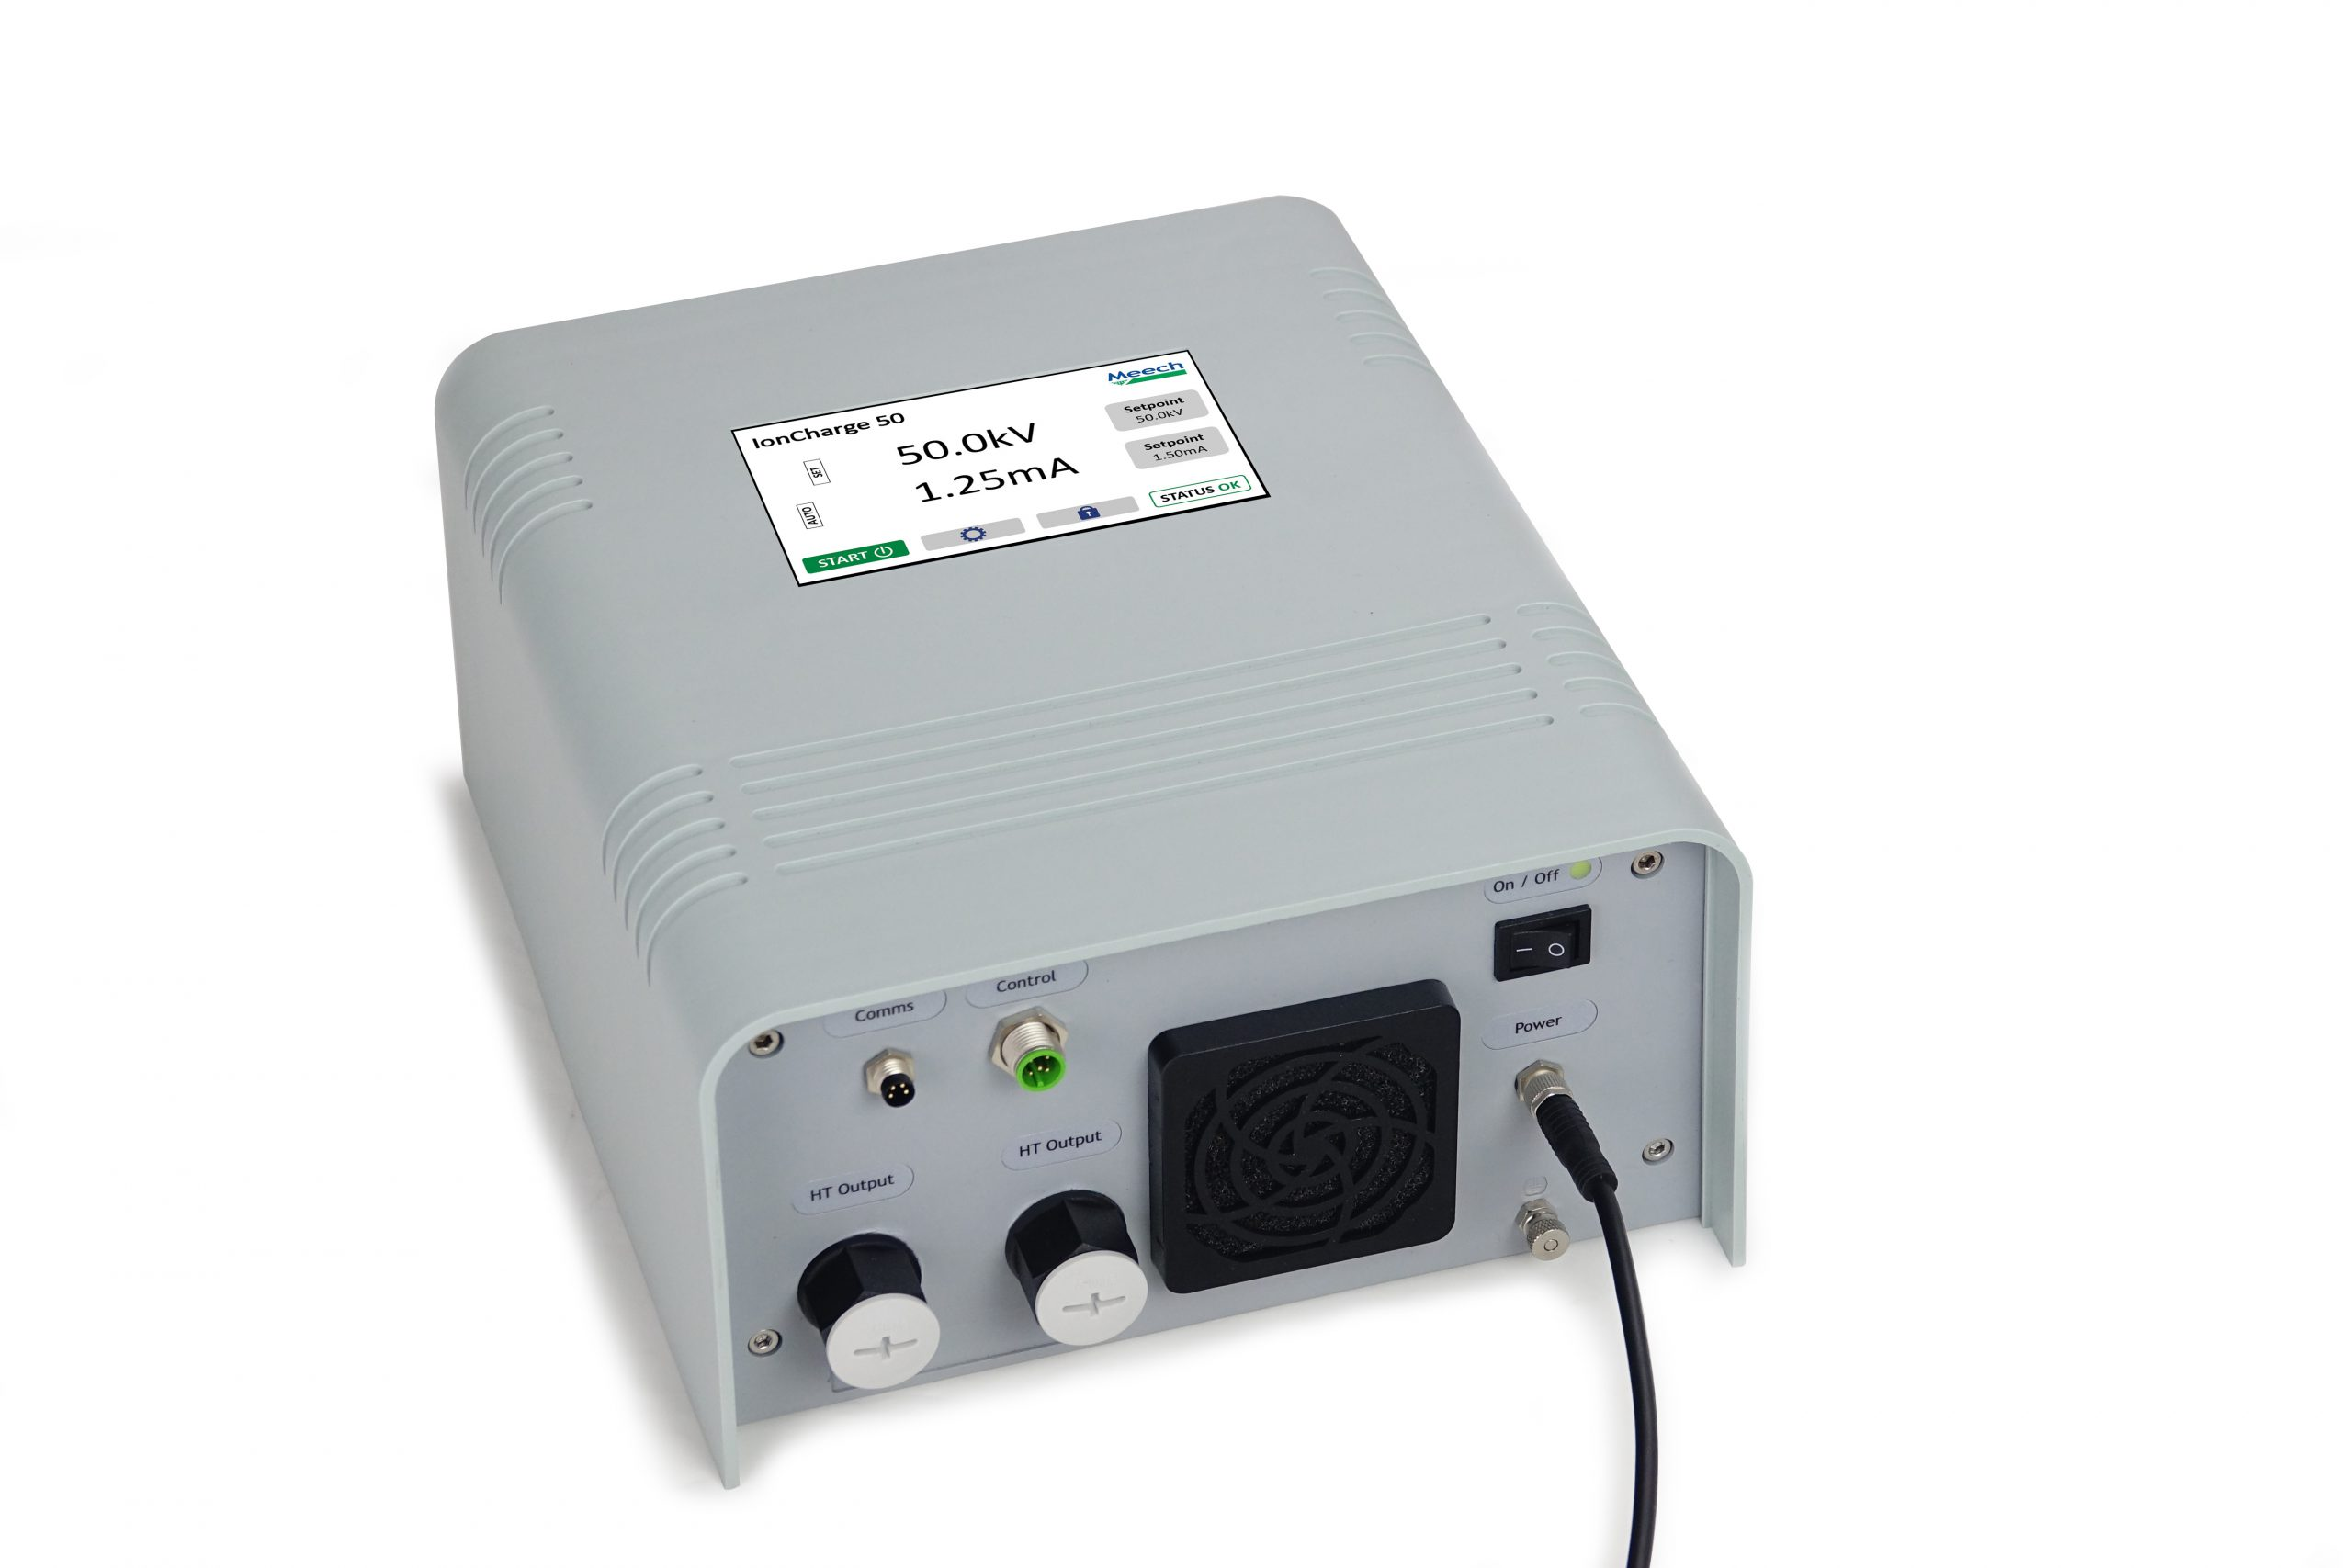 Hyperion IonCharge50 (75W)